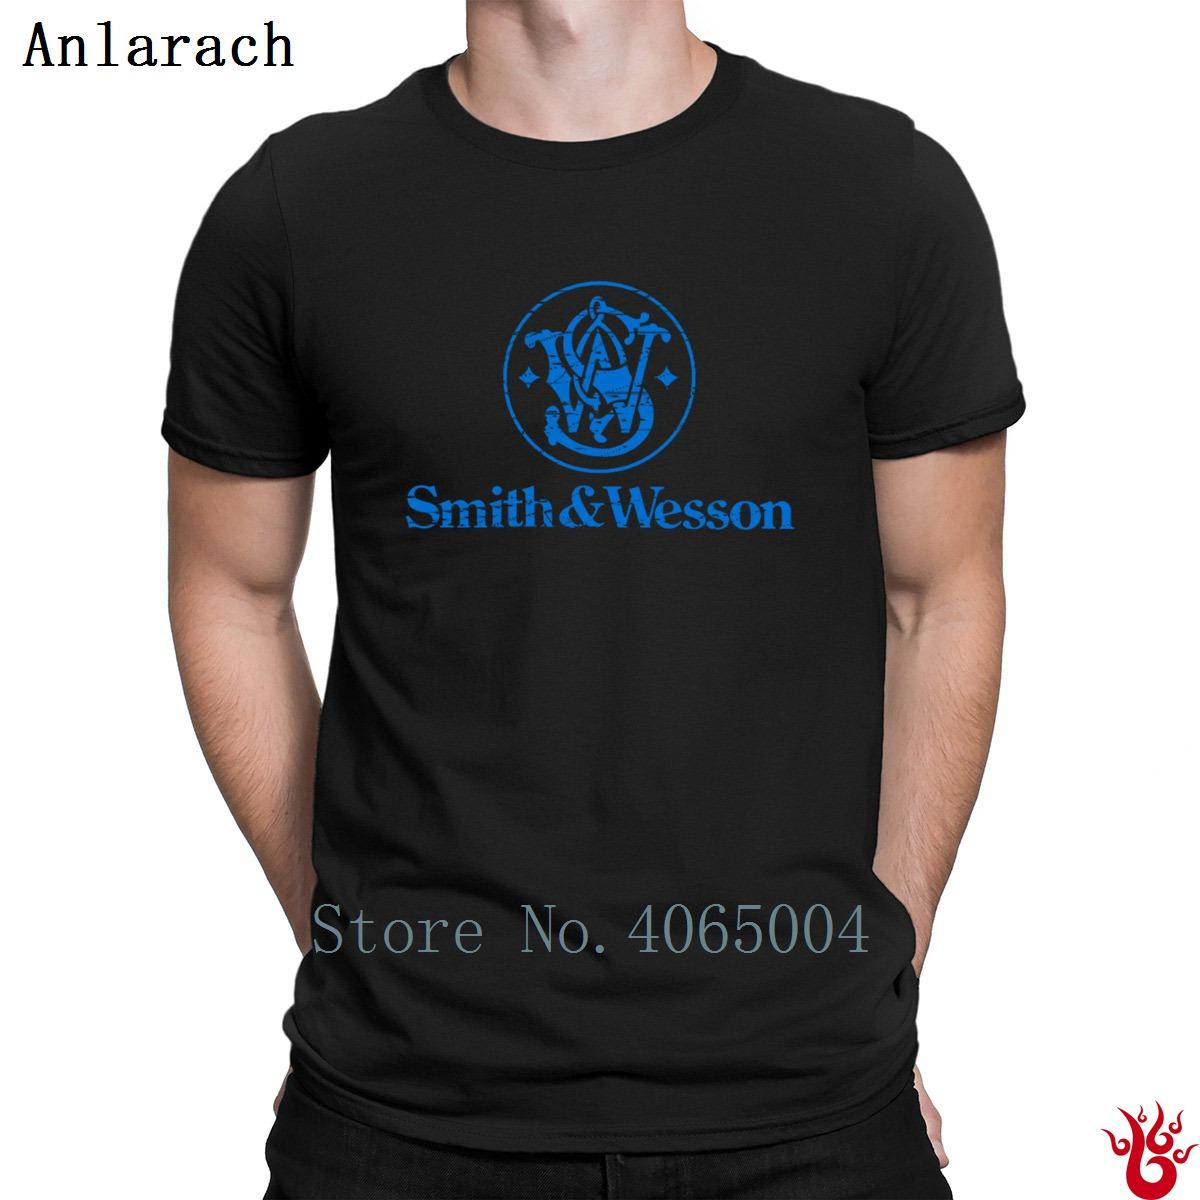 Smith And Wesson's Ampw T-Shirt Hip Hop Printed Crazy Streetwear Men Tshirt 2018 Round Collar Comfortable 100% Cotton Letter